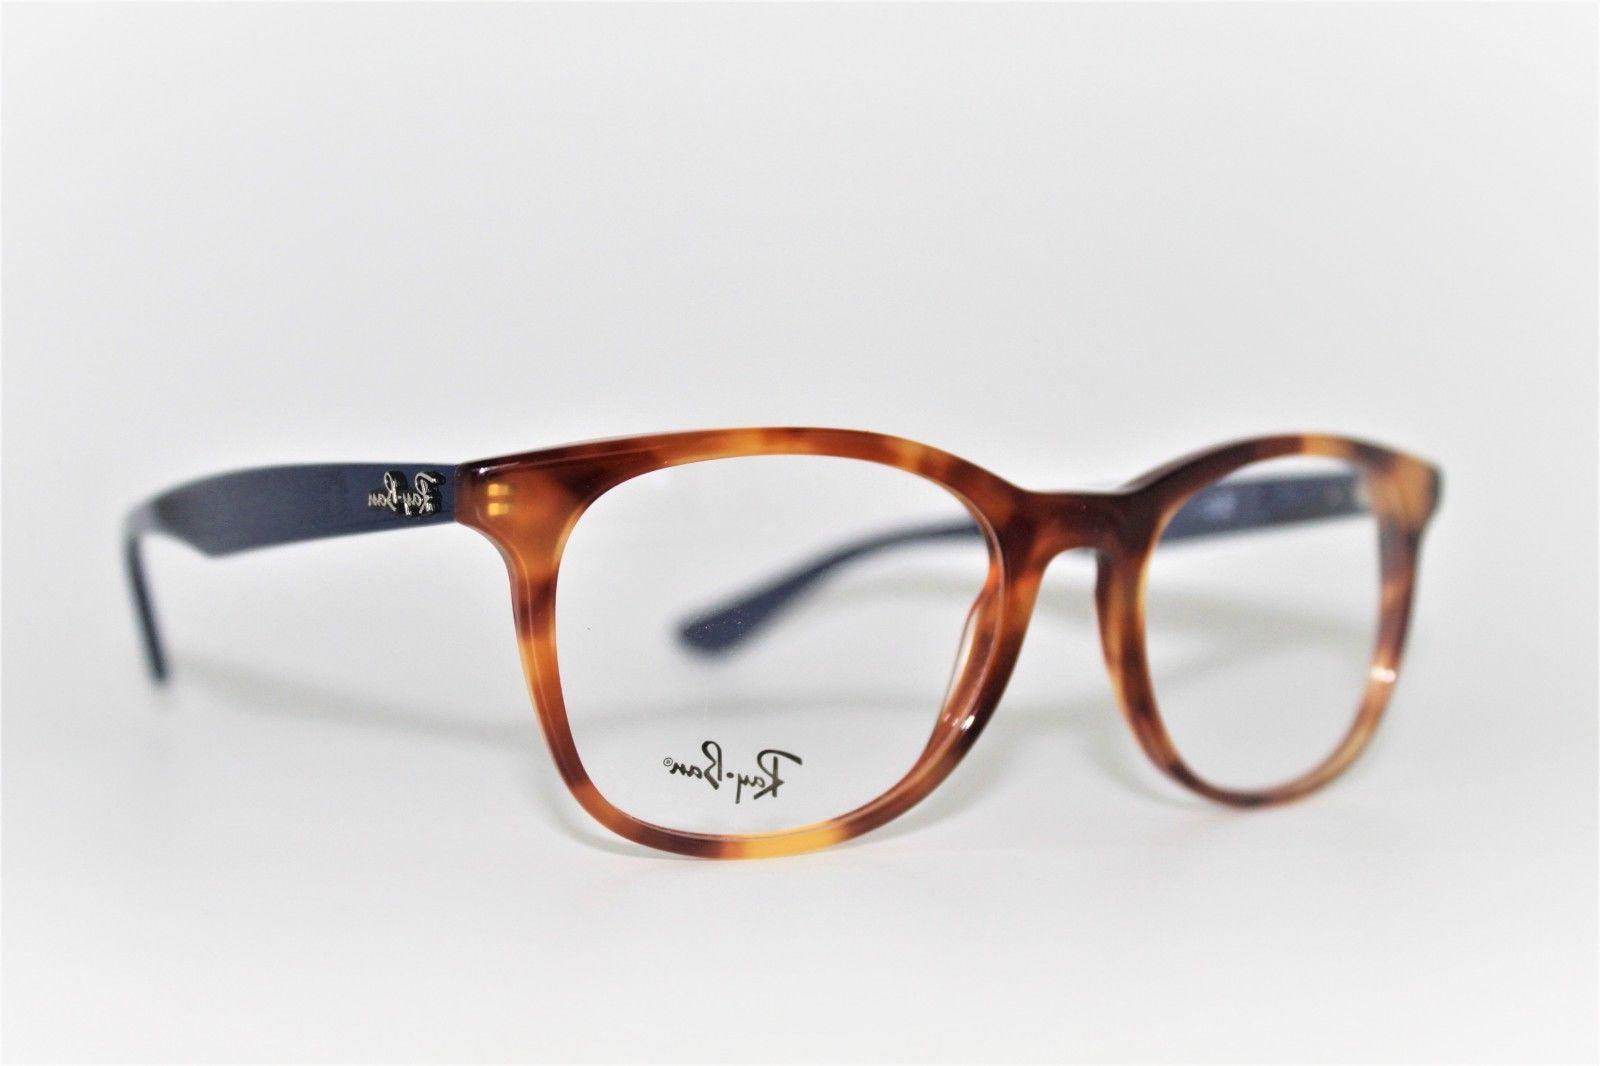 NEW AUTHENTIC RAY-BAN RB 5356 5609 HAVANA FRAMES EYEGLASSES